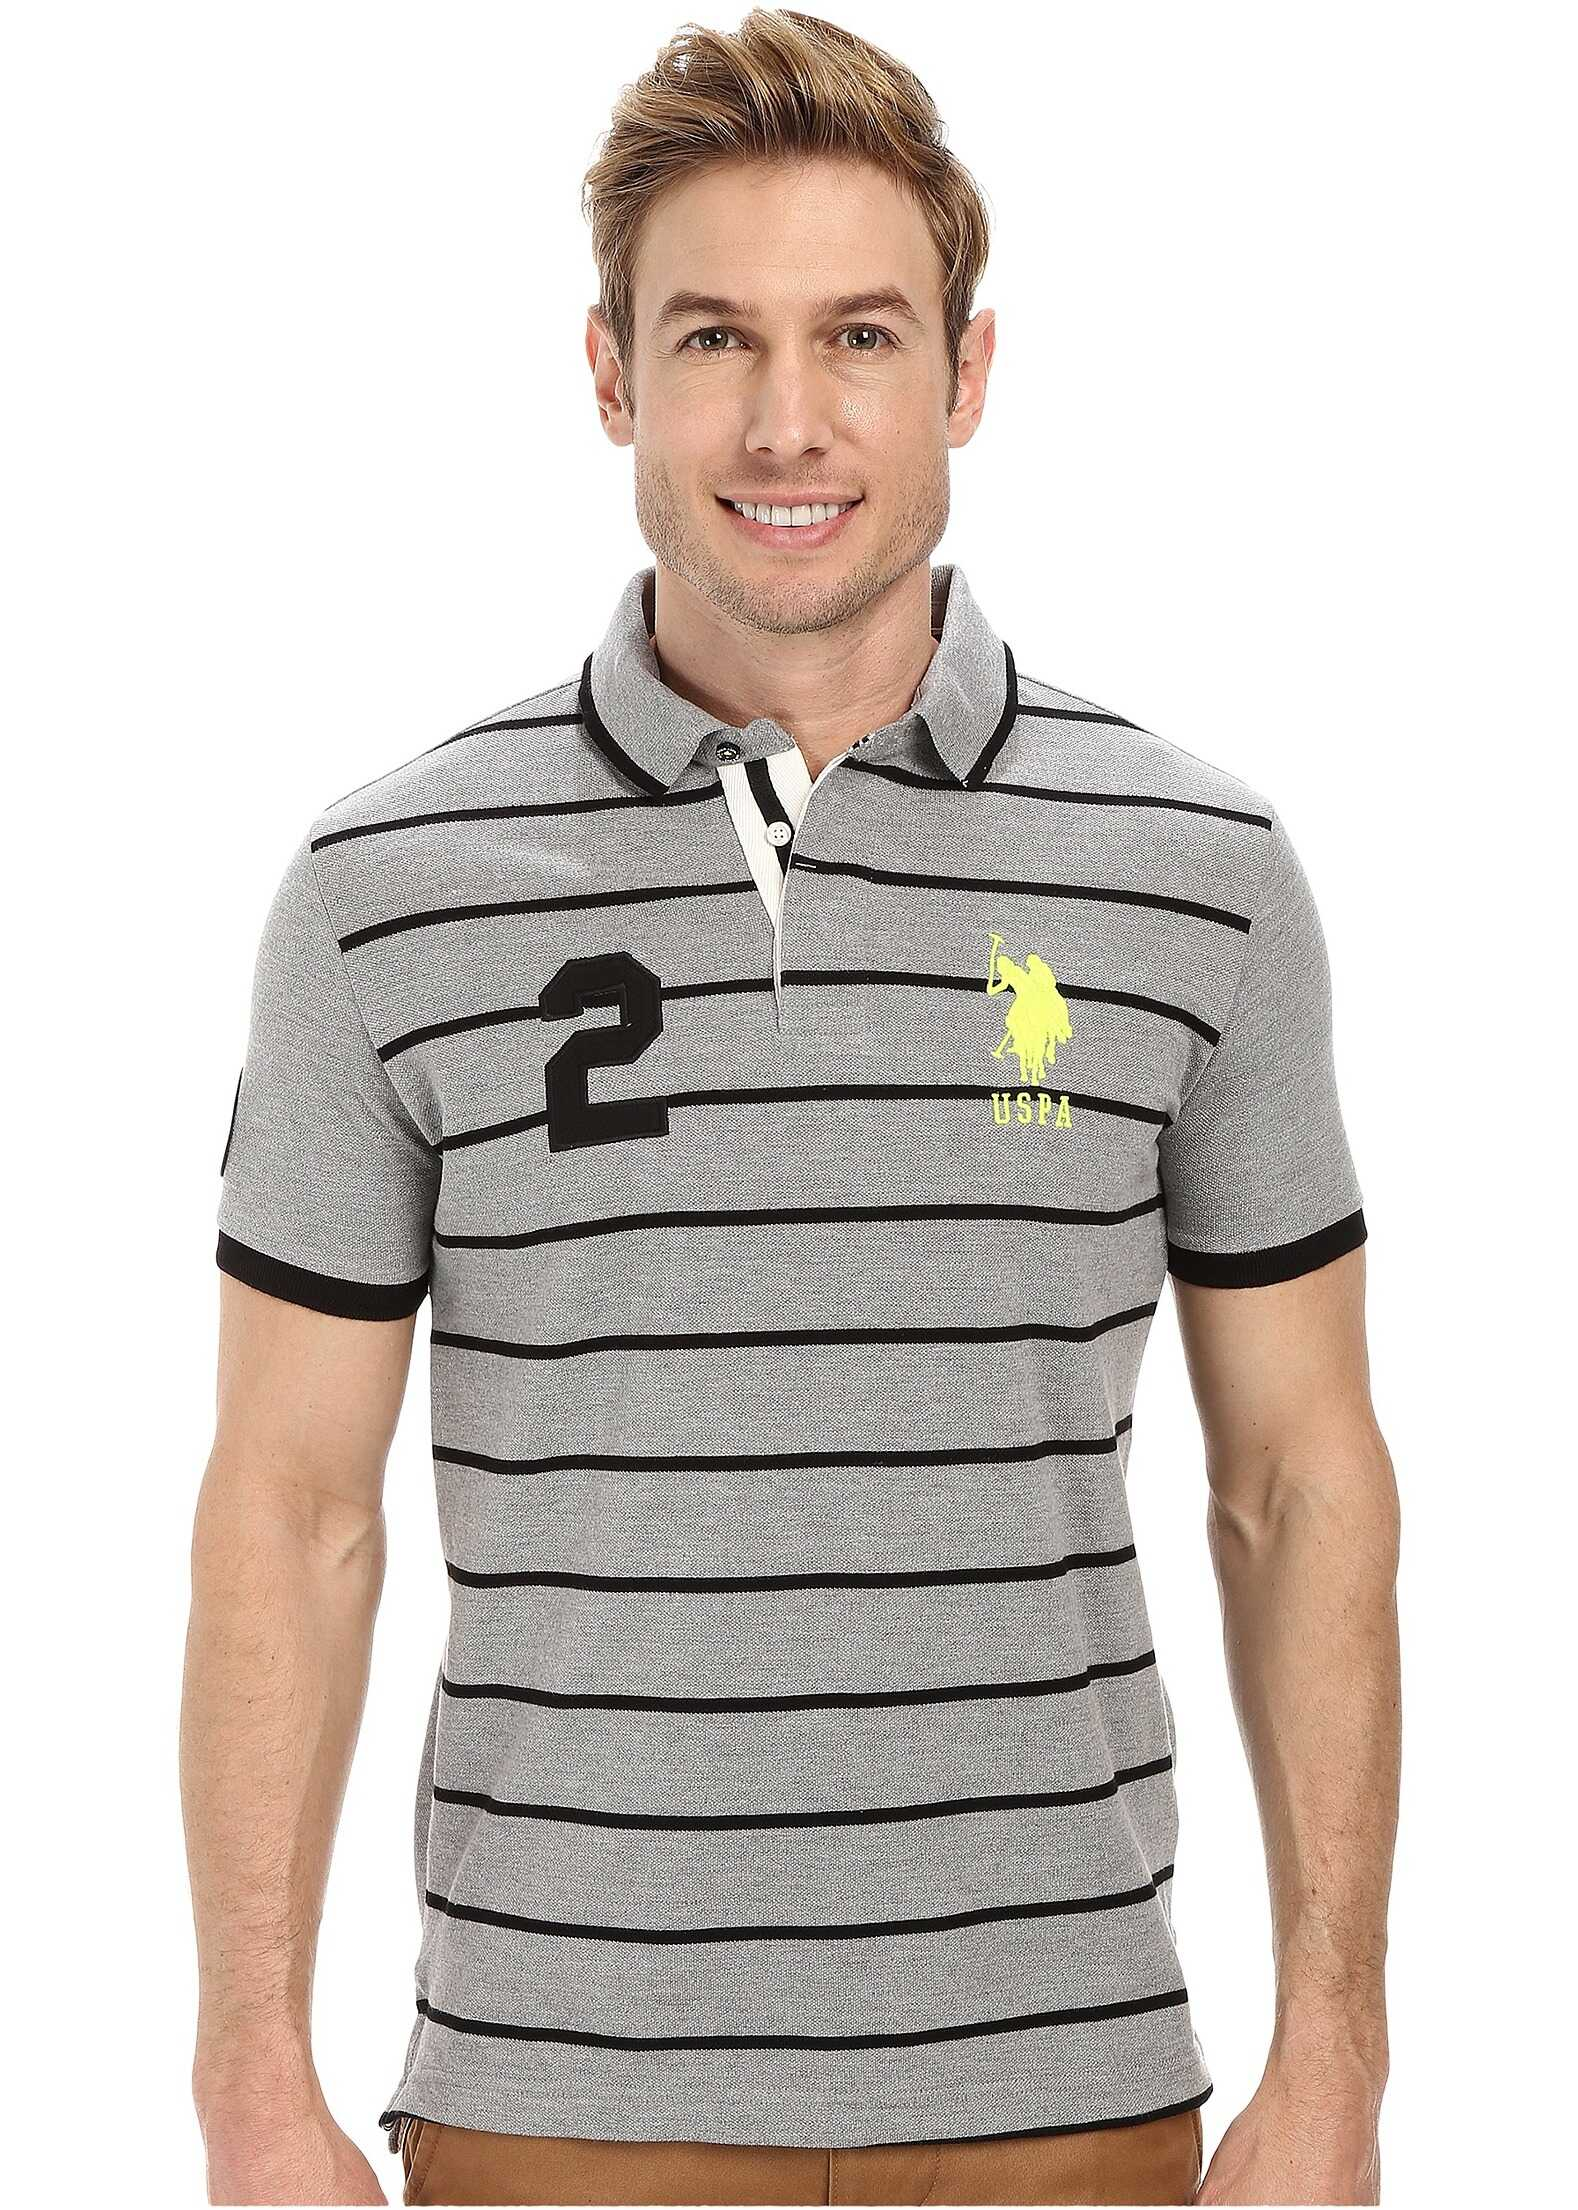 U.S. POLO ASSN. Slim Fit Stripe and Solid Pique Polo Heather Gray